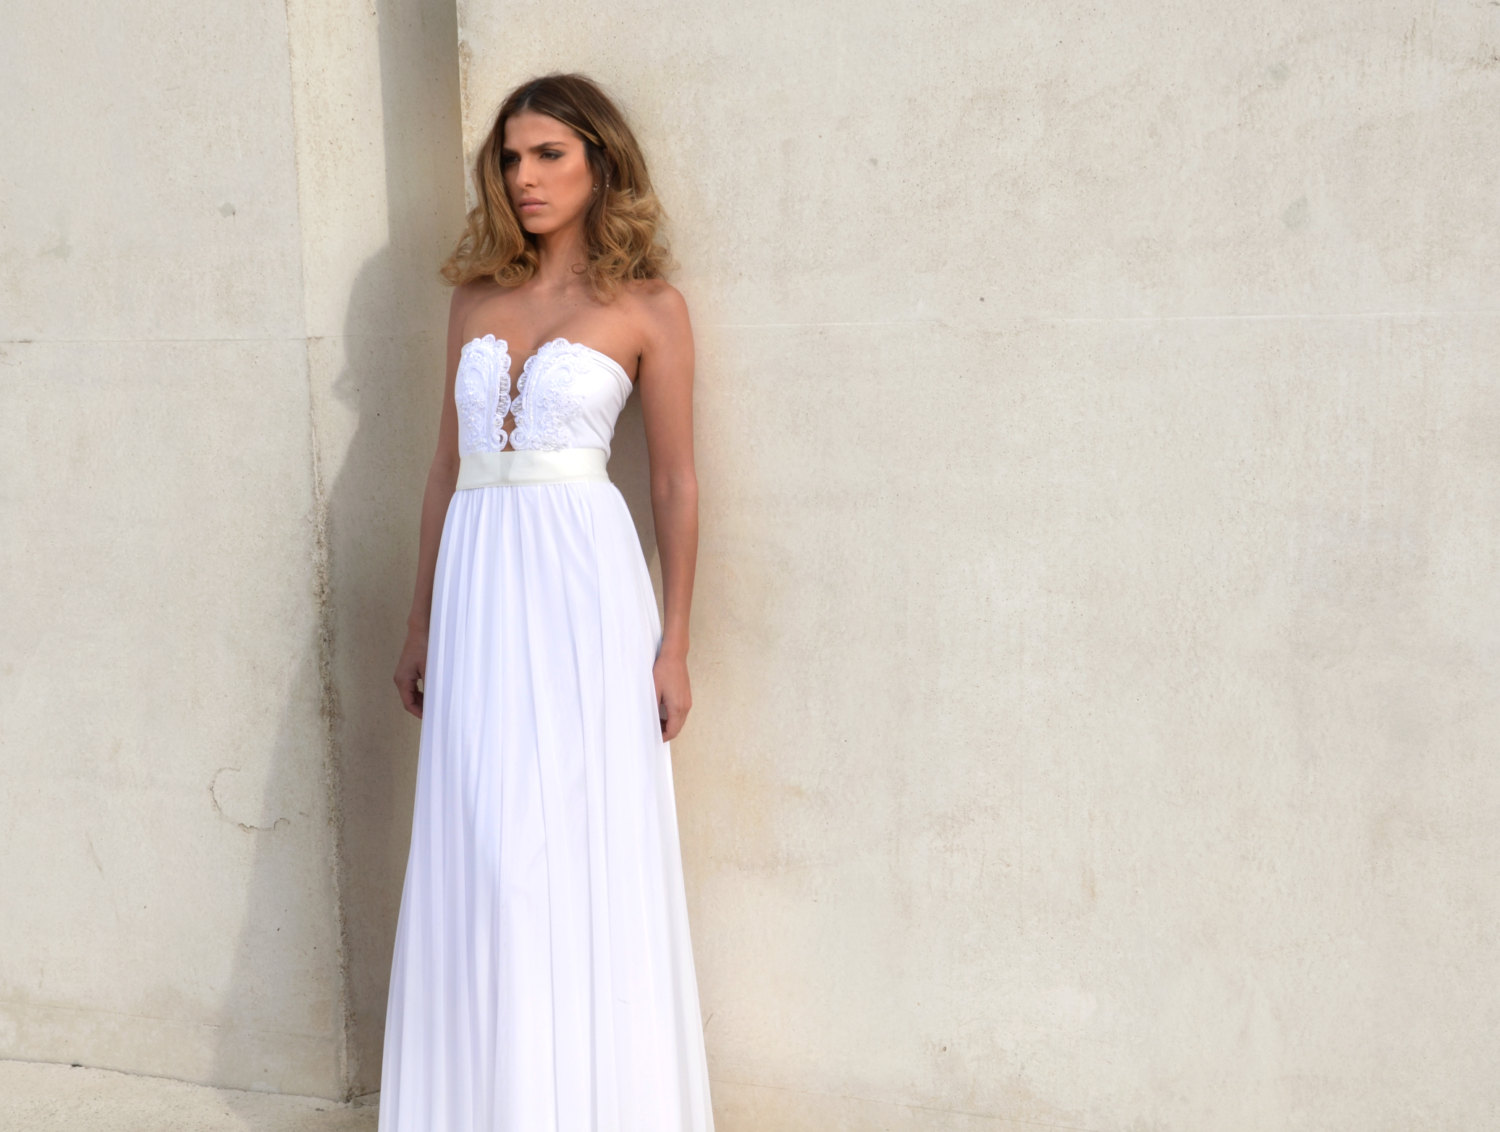 strapless boho wedding dress | dresses boho weddings https://emmalinebride.com/bridal-gowns/dresses-boho-weddings/